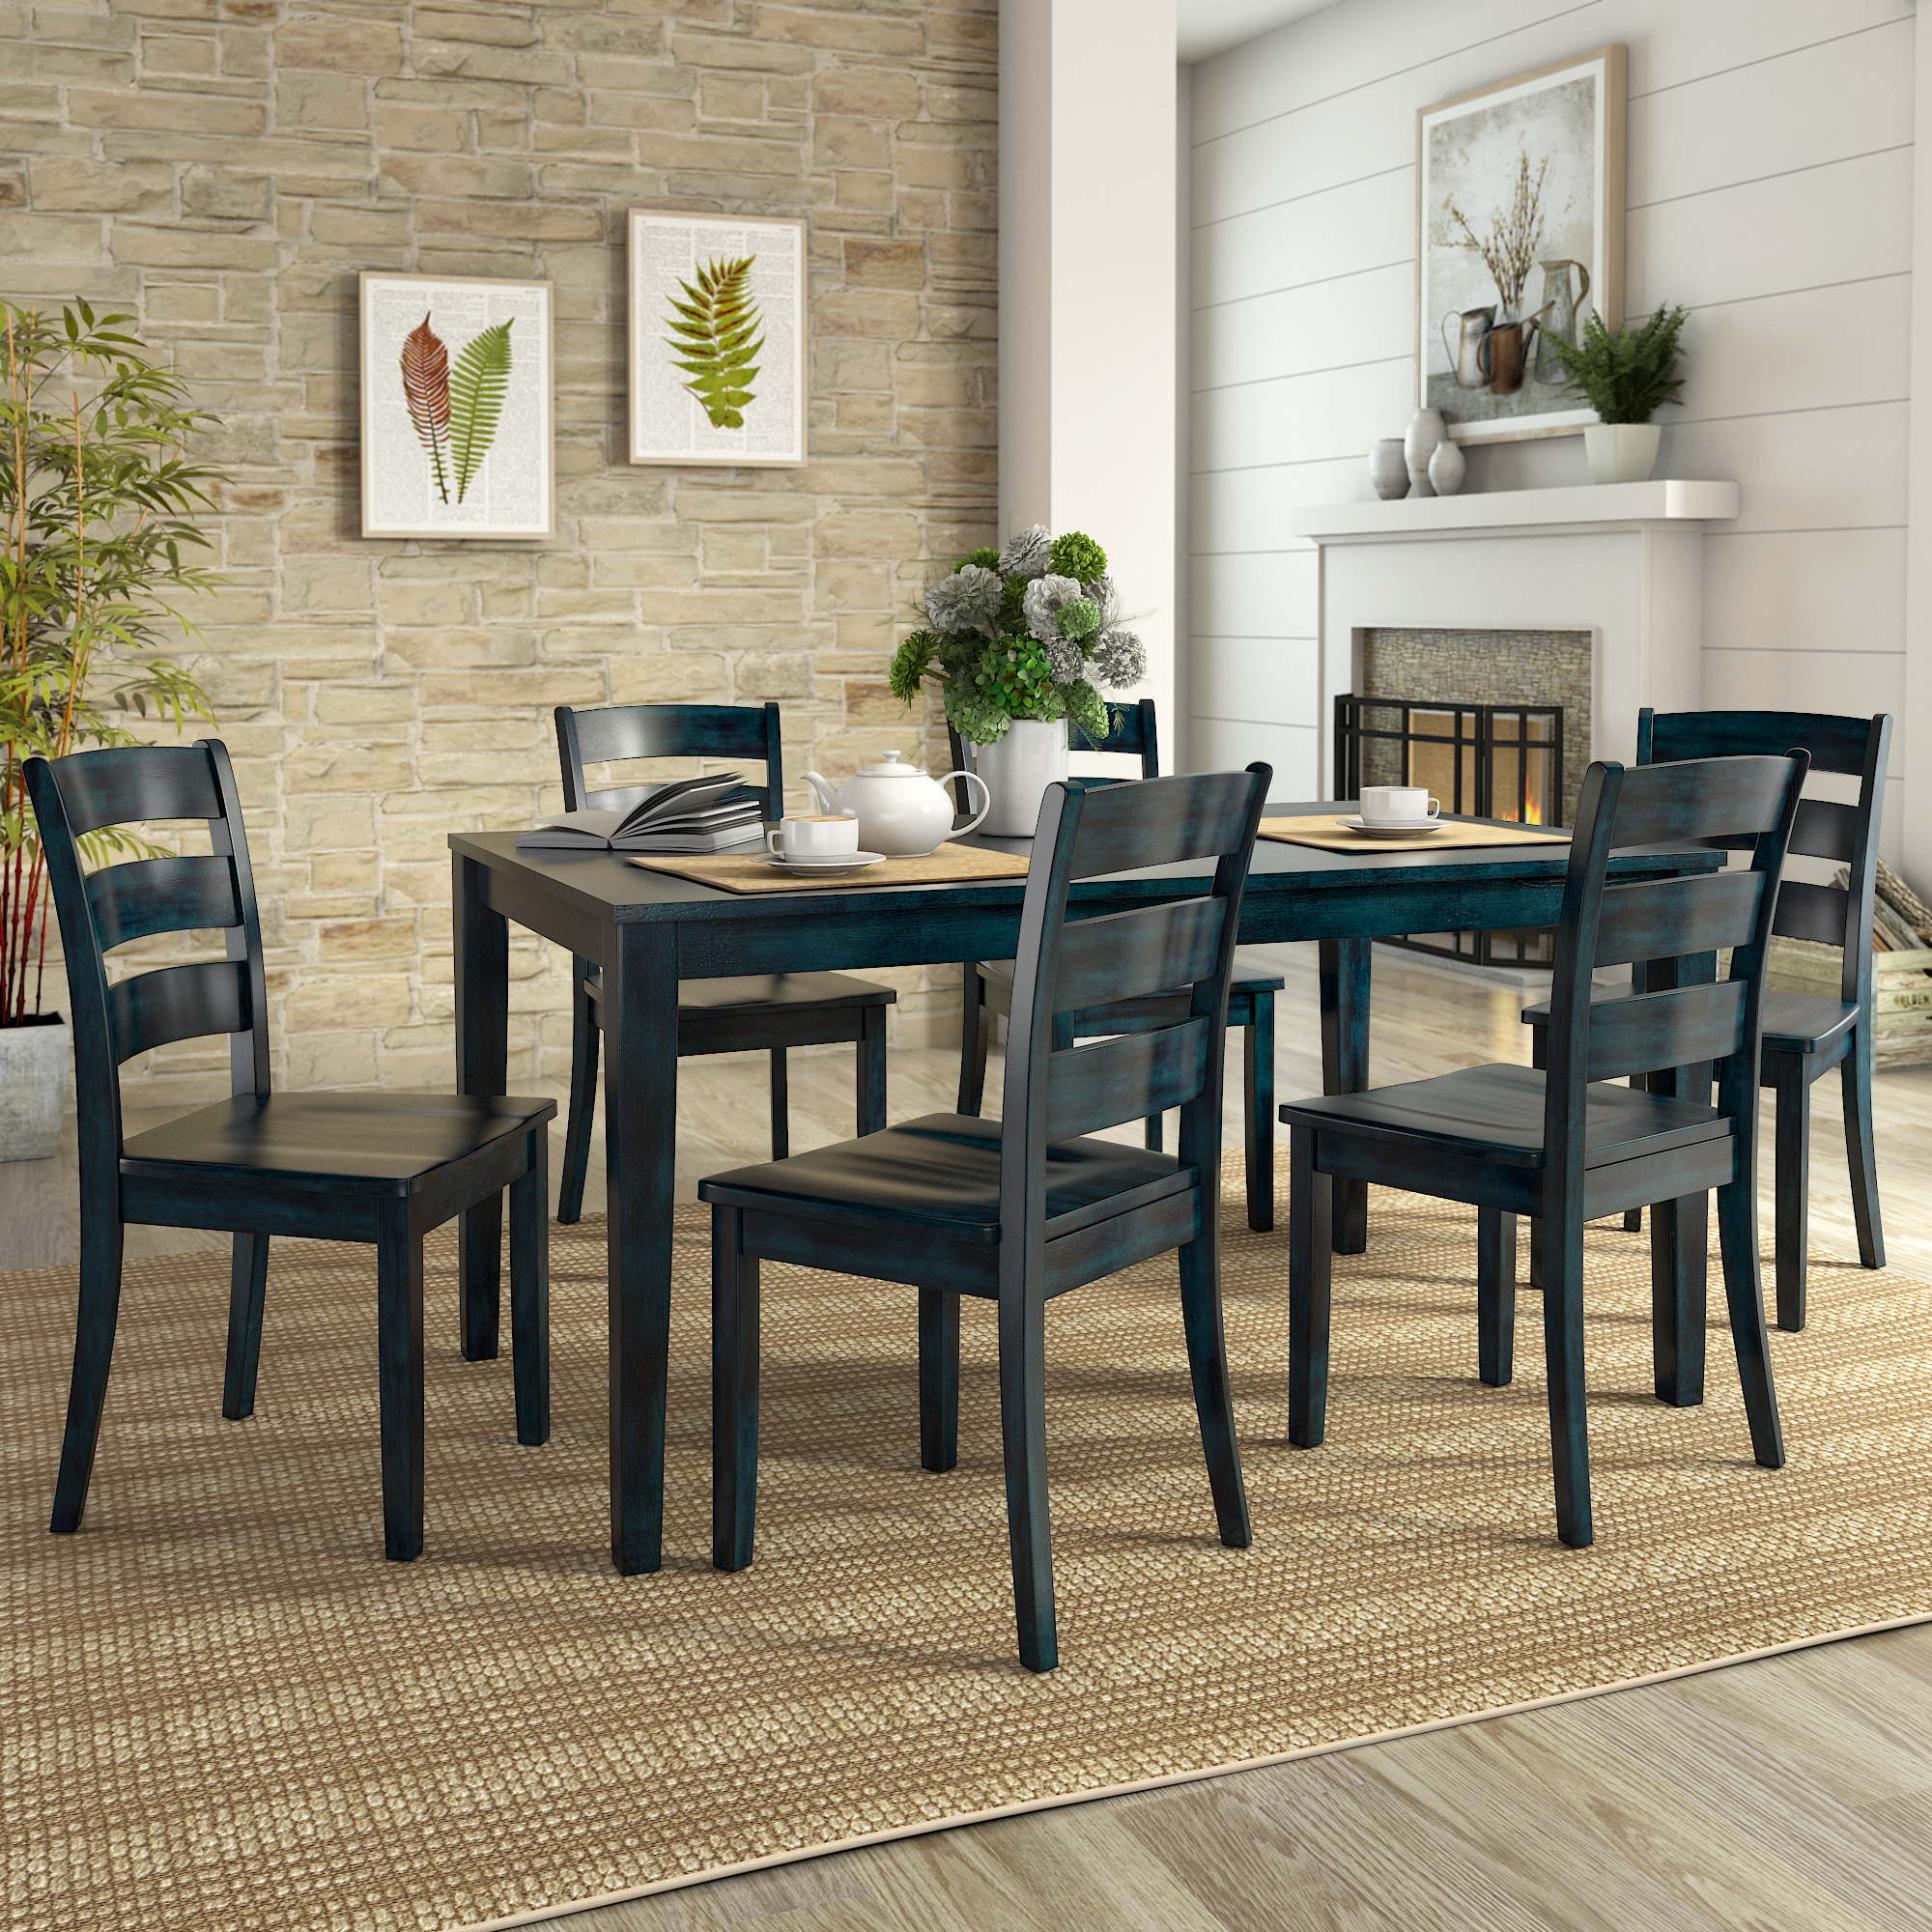 Signature Design By Ashley Woodanville, Woodinville Dining Room Table And Chairs Set Of 7